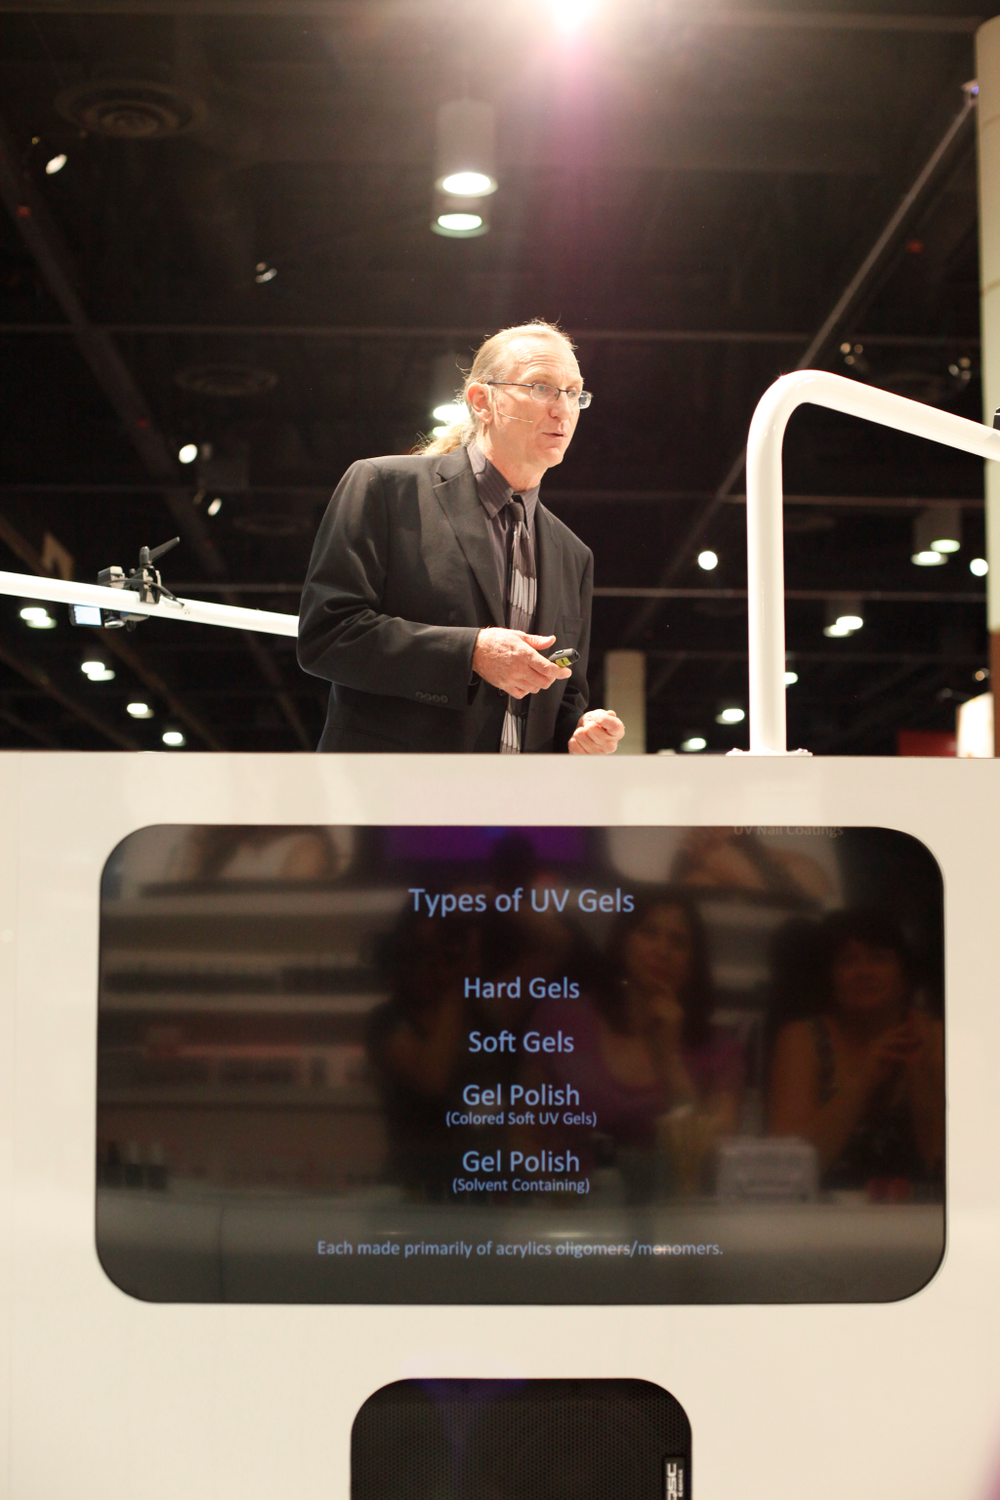 <p>CND unveiled its new booth complete with a 360-degree main stage. CND&rsquo;s chief scientist, Doug Schoon, presented the science of gels and UV lamps to the surrounding crowd.</p>